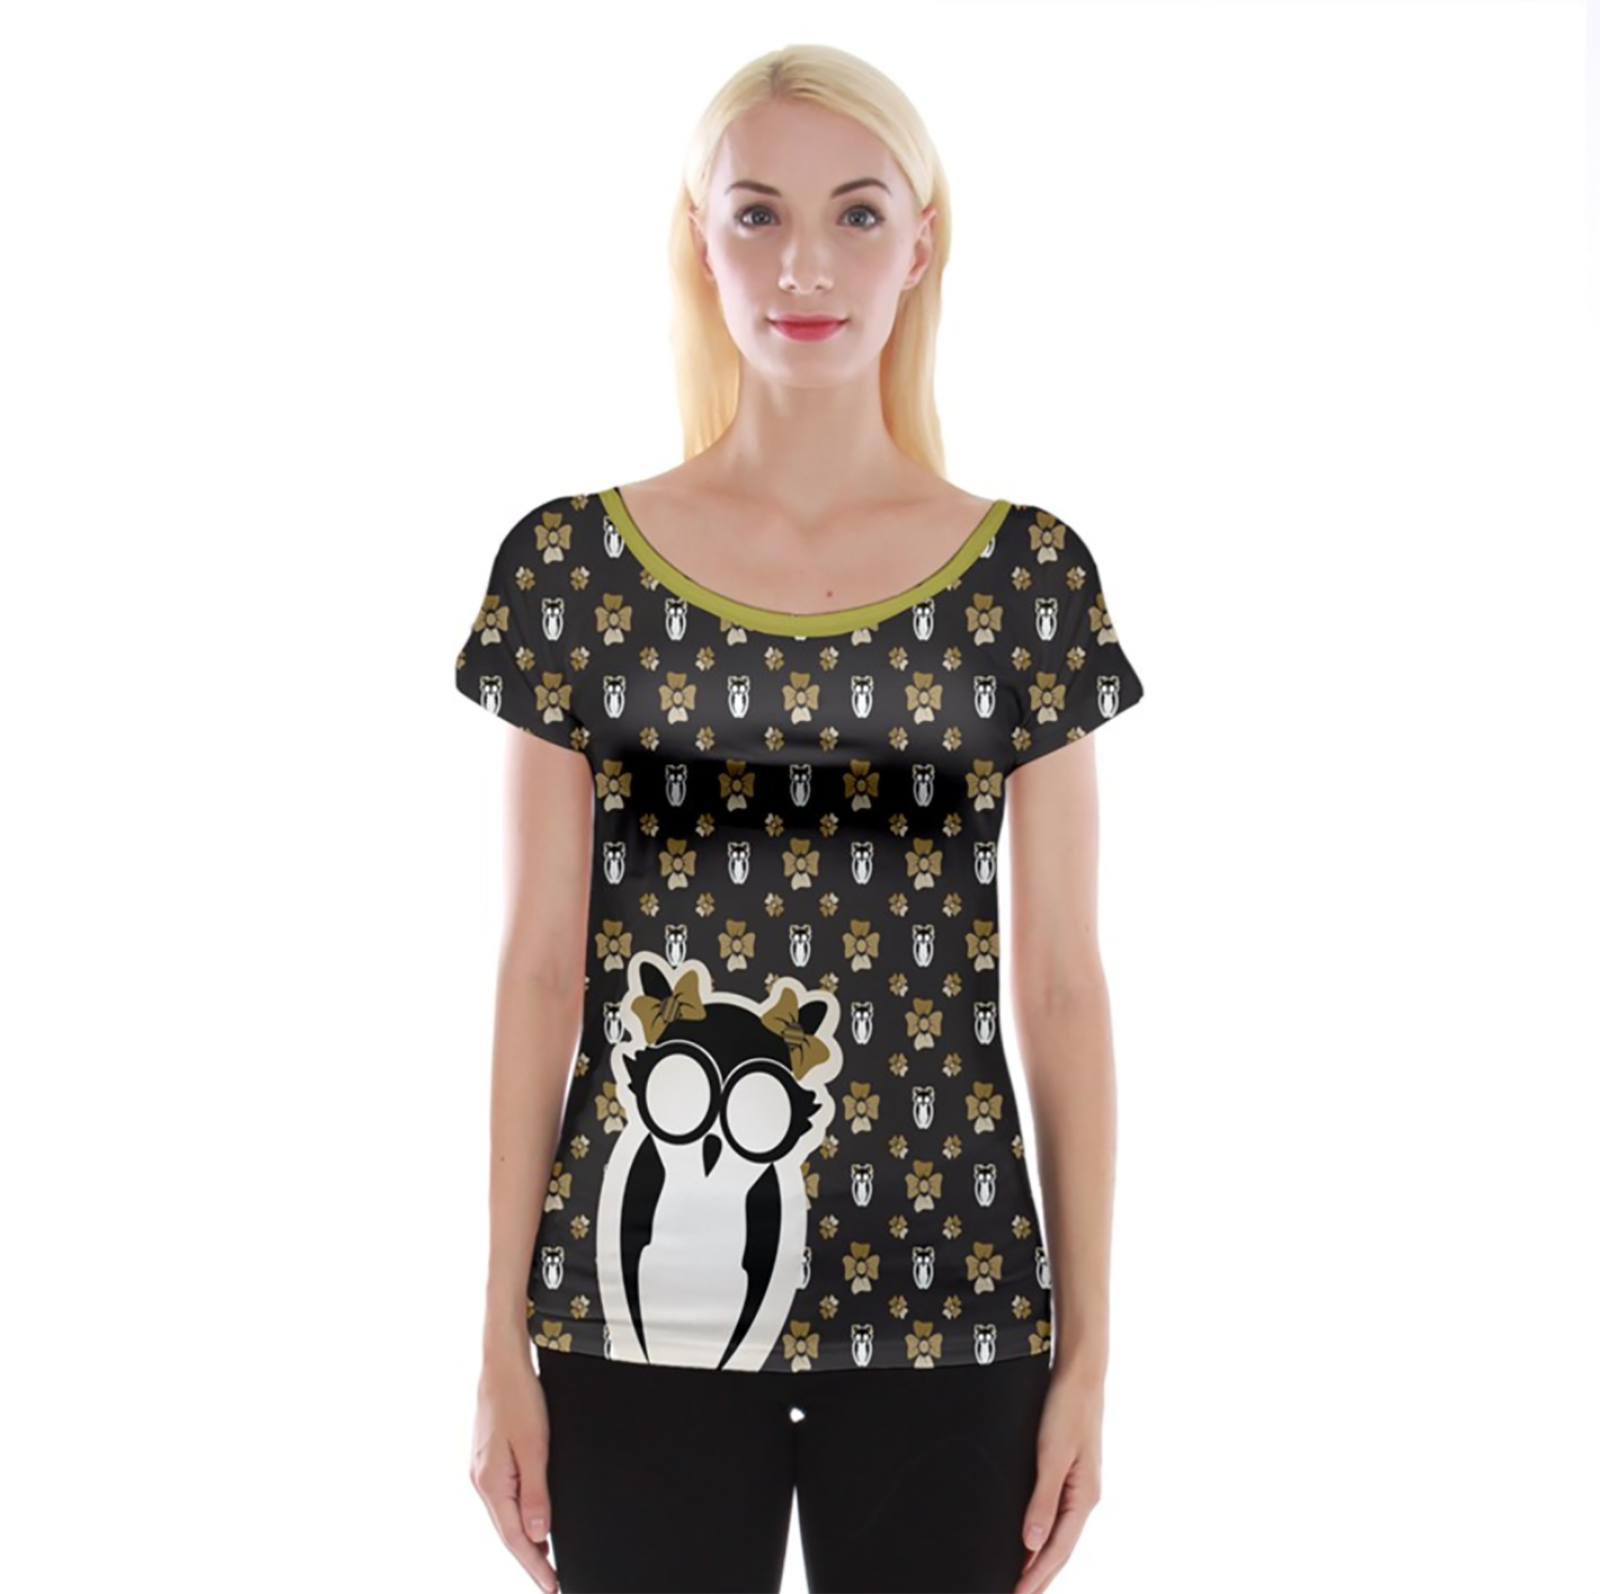 Yellow & Black Owl Pattern Cap Sleeve Top - Inspired by Hufflepuff